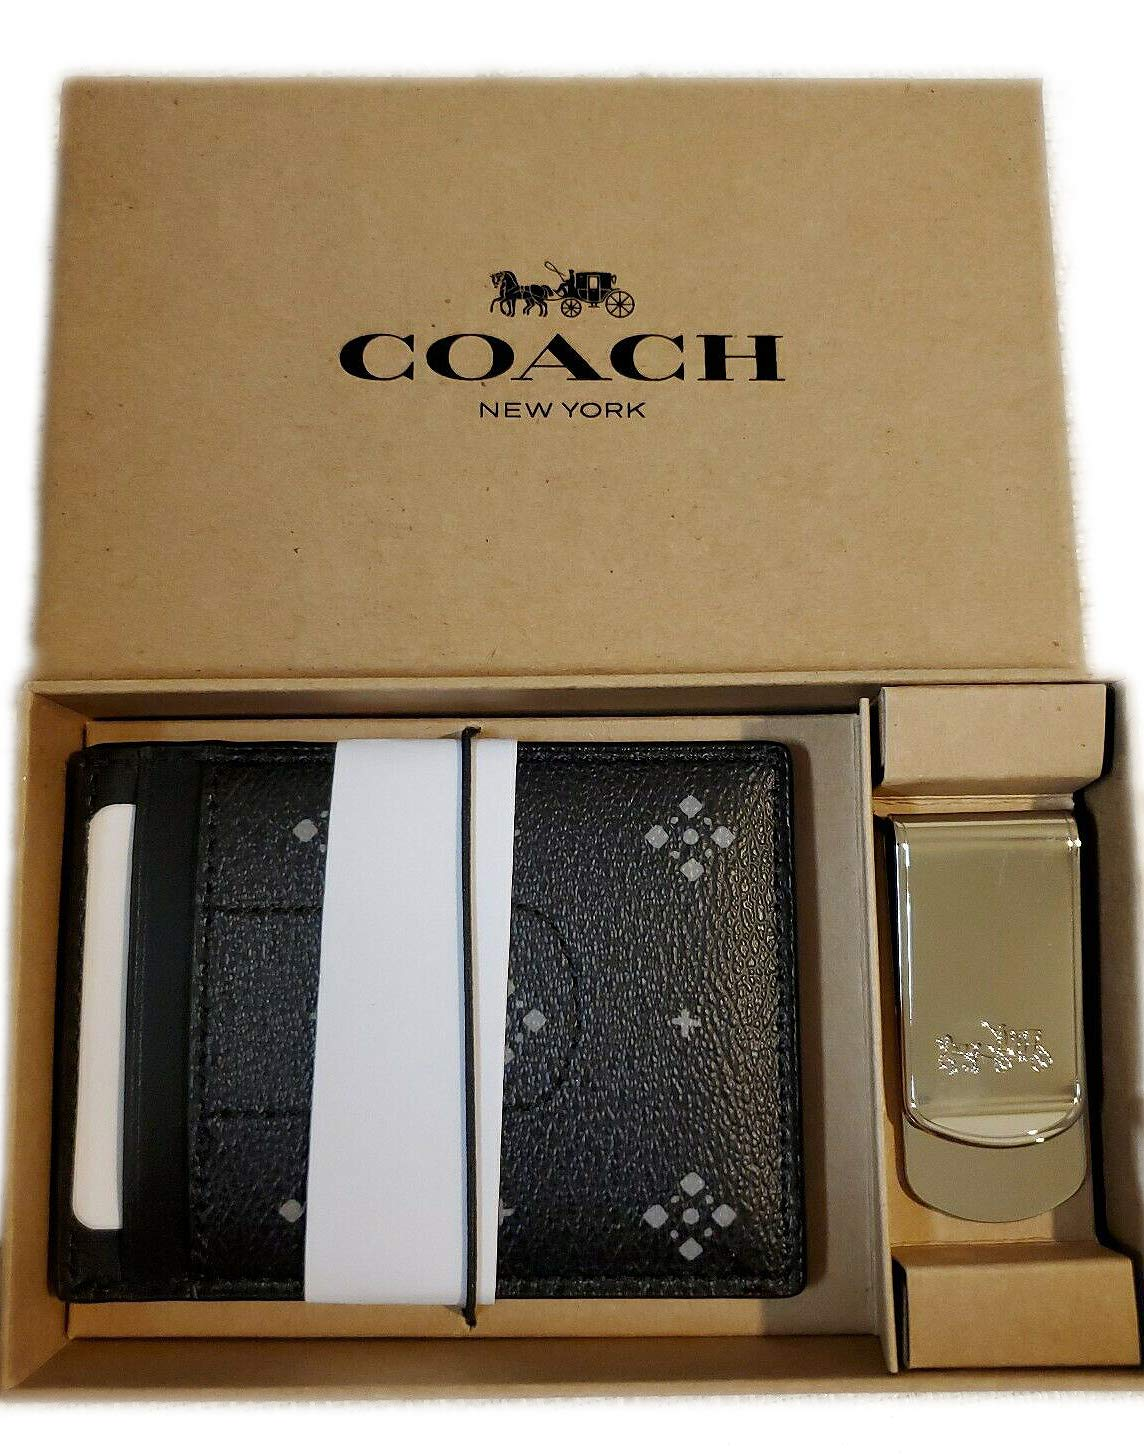 Coach Boxed 3-In-1 Card Case Gift Set Diamond Foulard Print, Black, F73112 8842-4